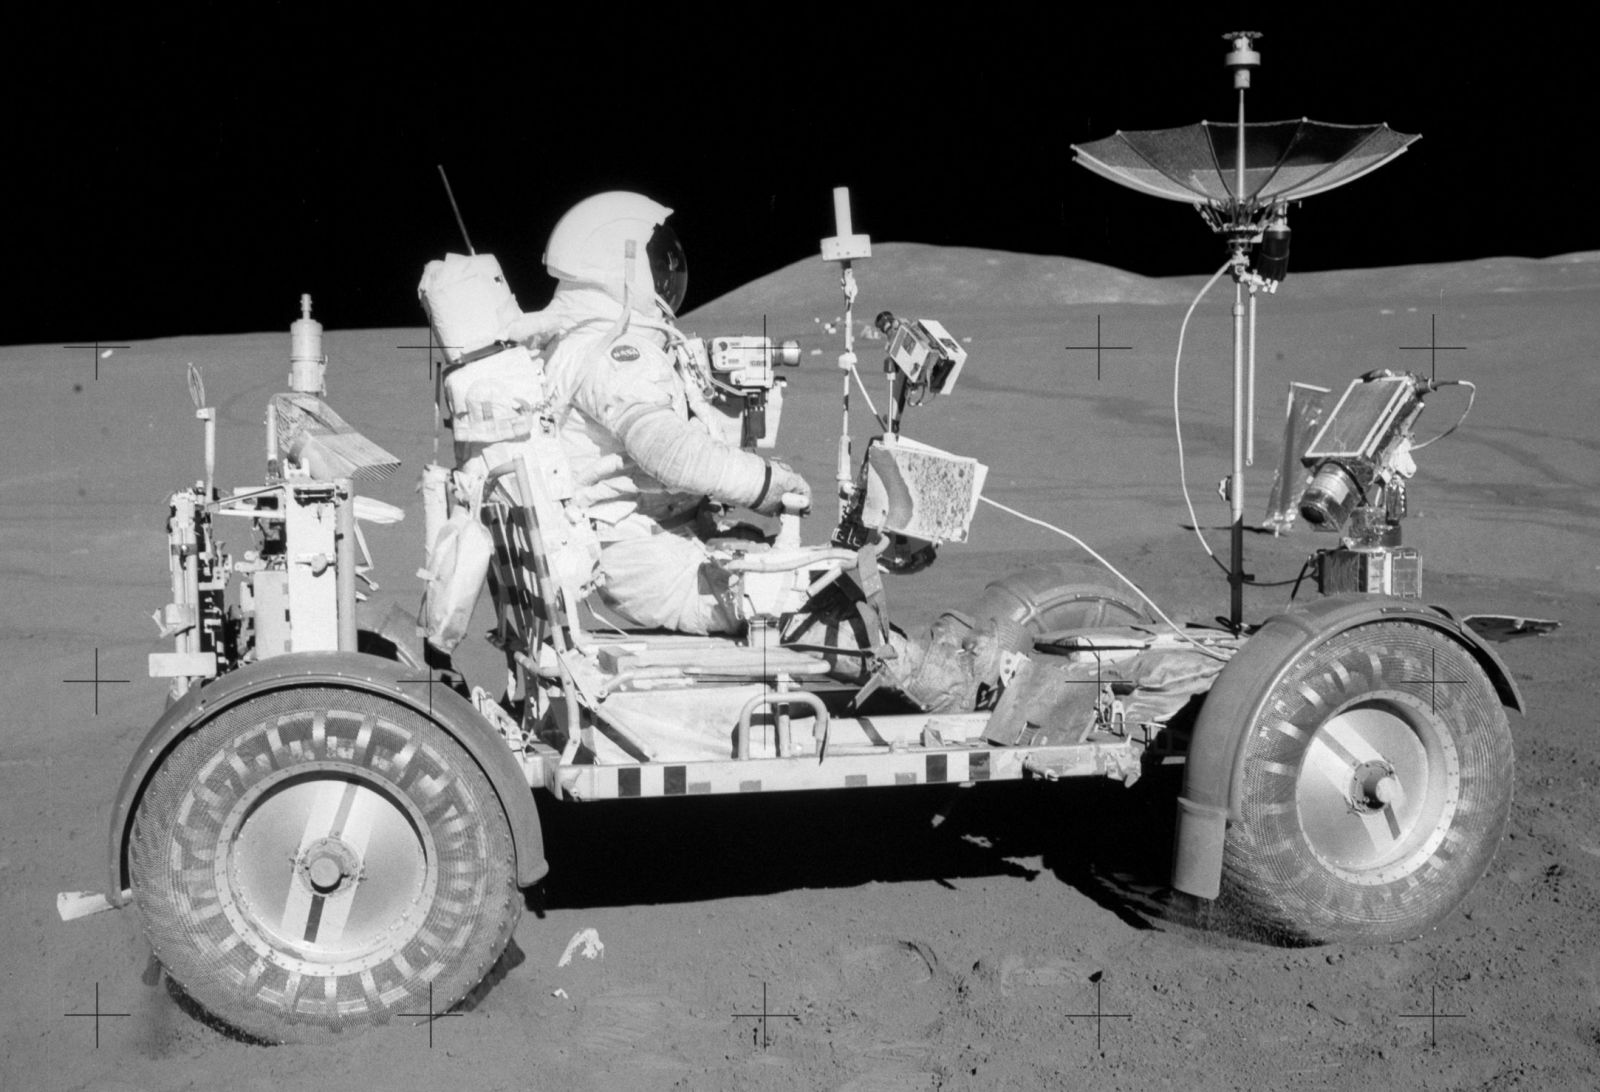 moon rover images - photo #5